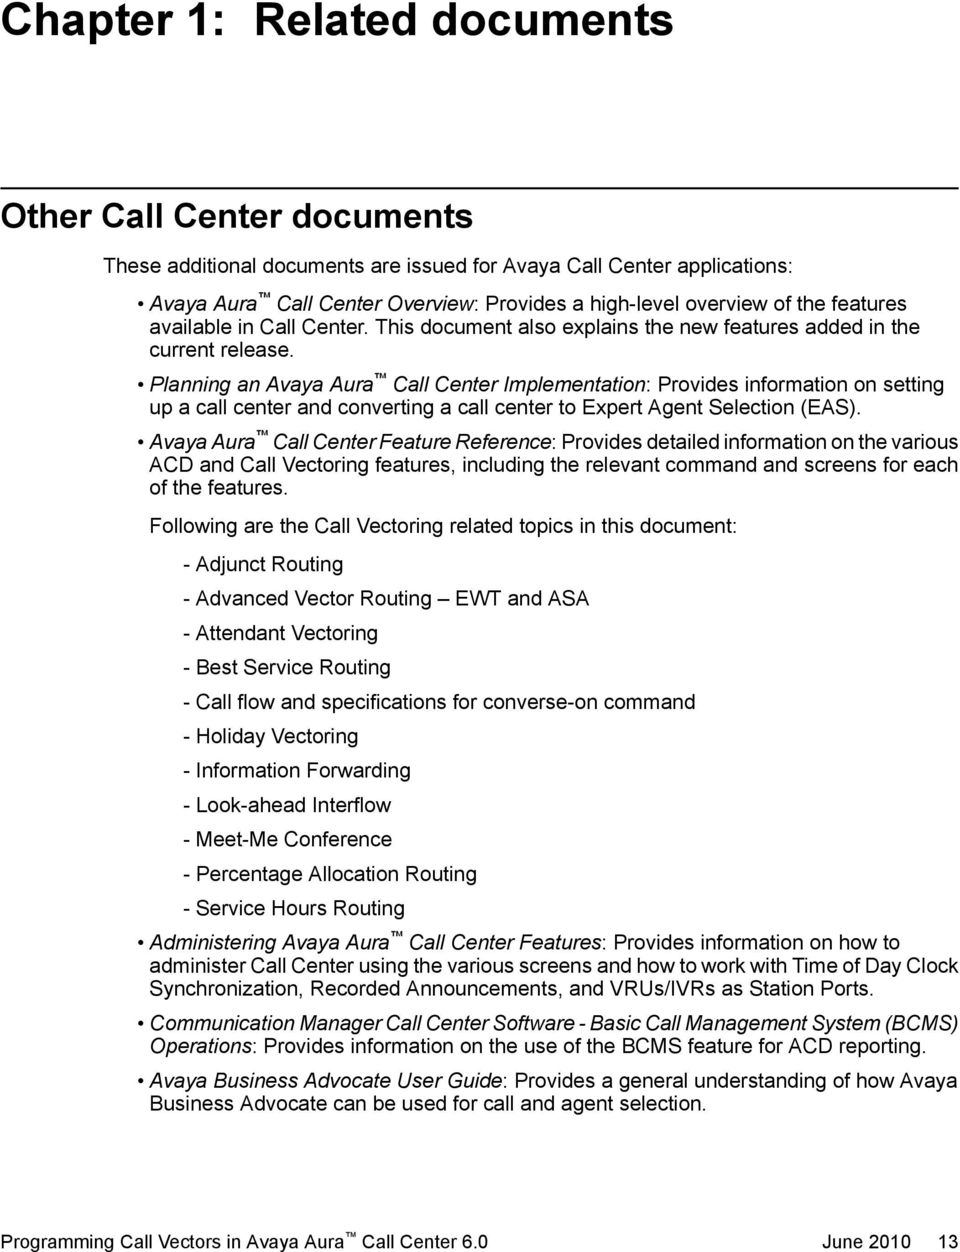 Planning an Avaya Aura Call Center Implementation: Provides information on  setting up a call center